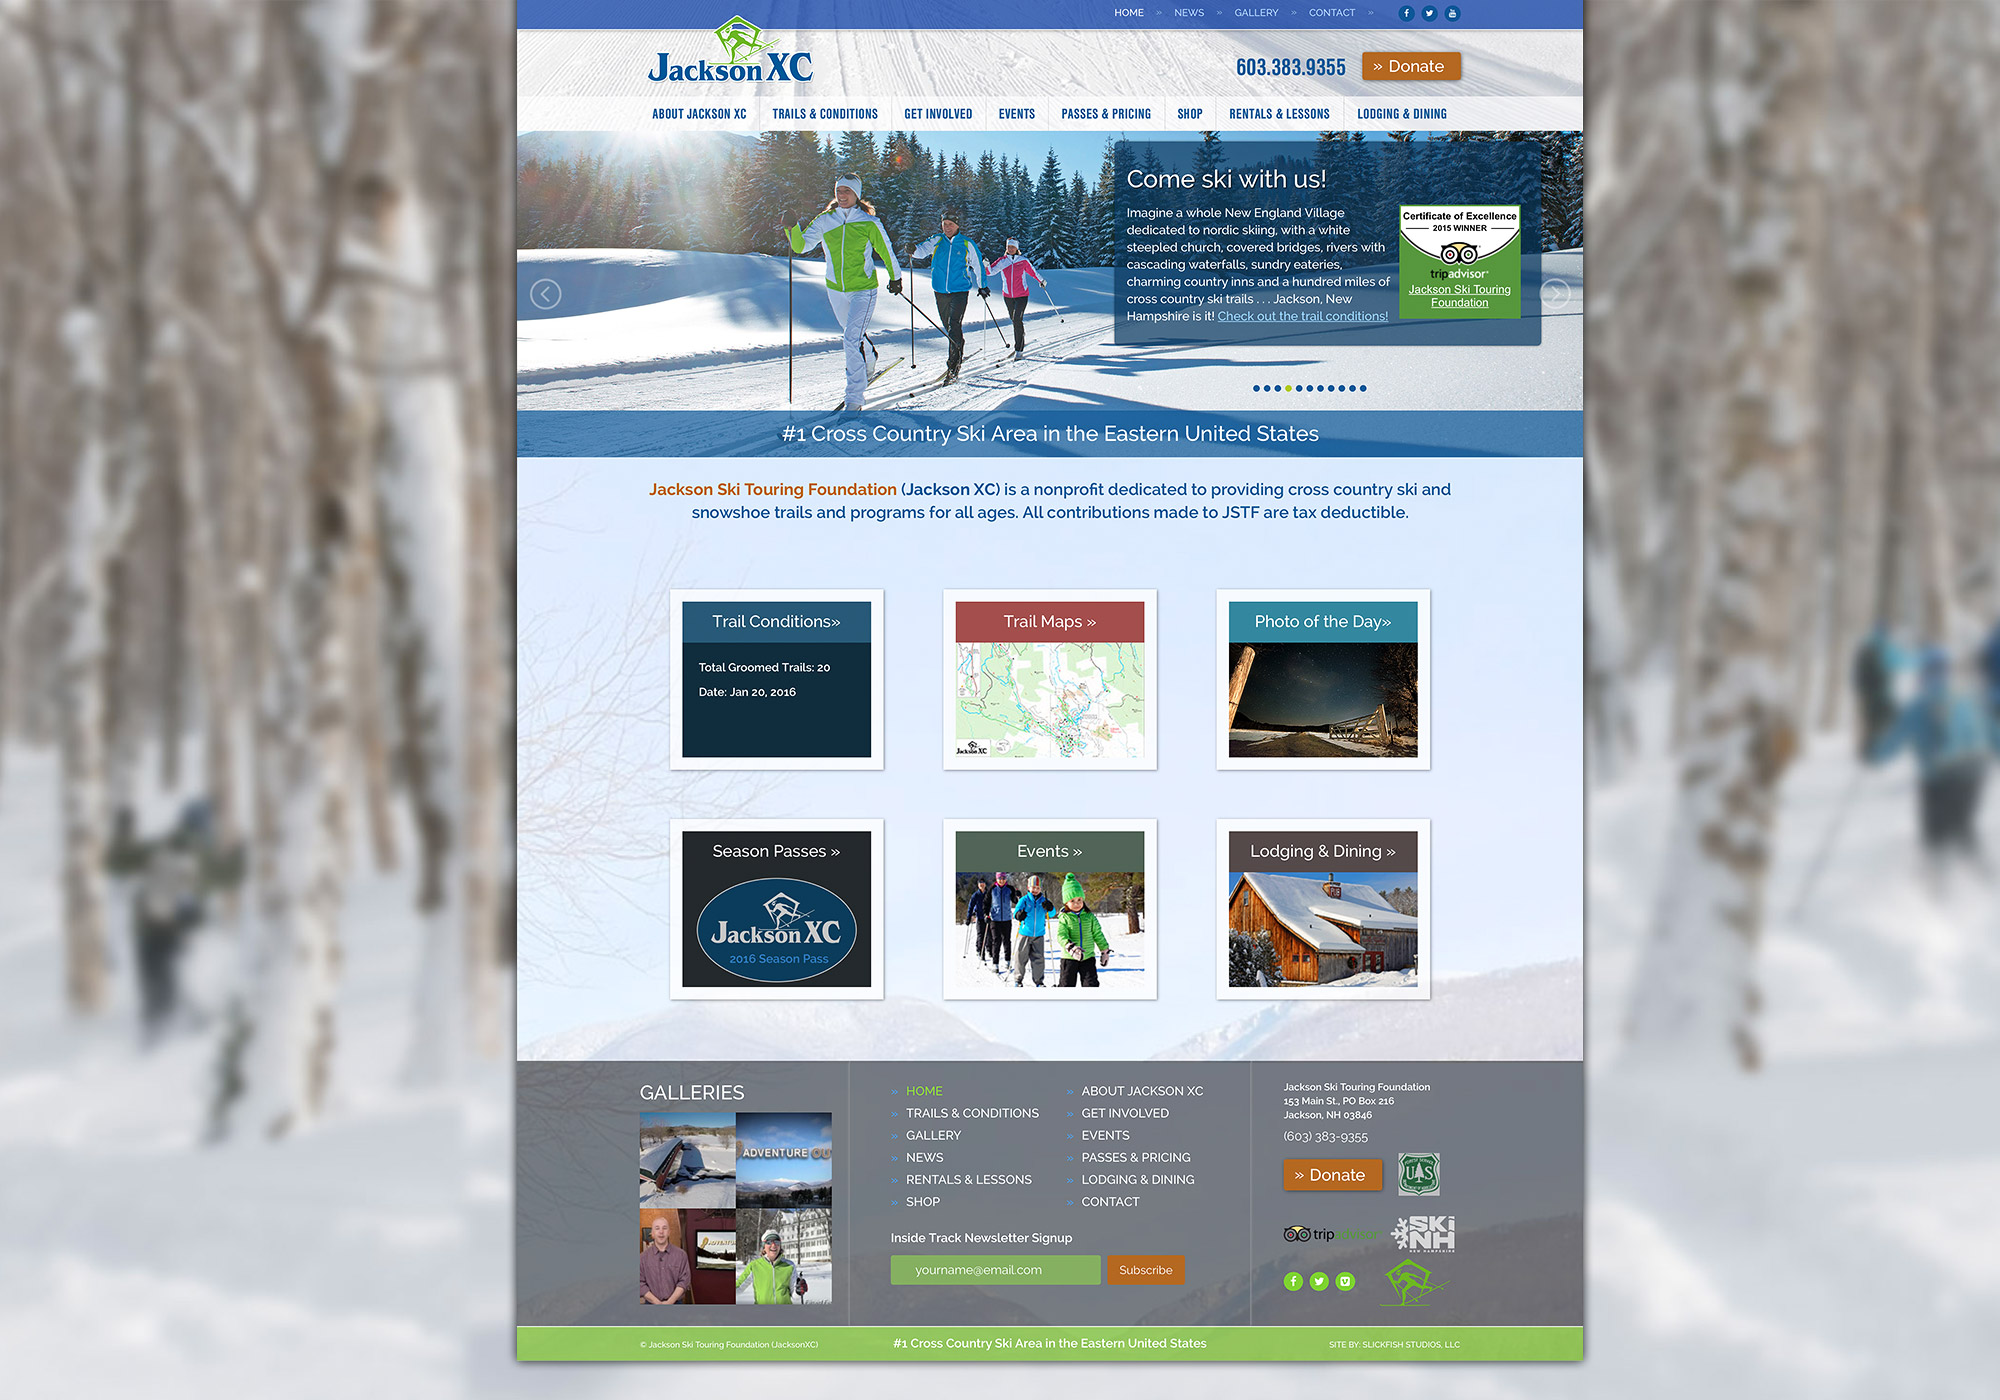 A screenshot crop of the SlickFish Studios designed homepage on the Jackson Ski Touring Foundation website.